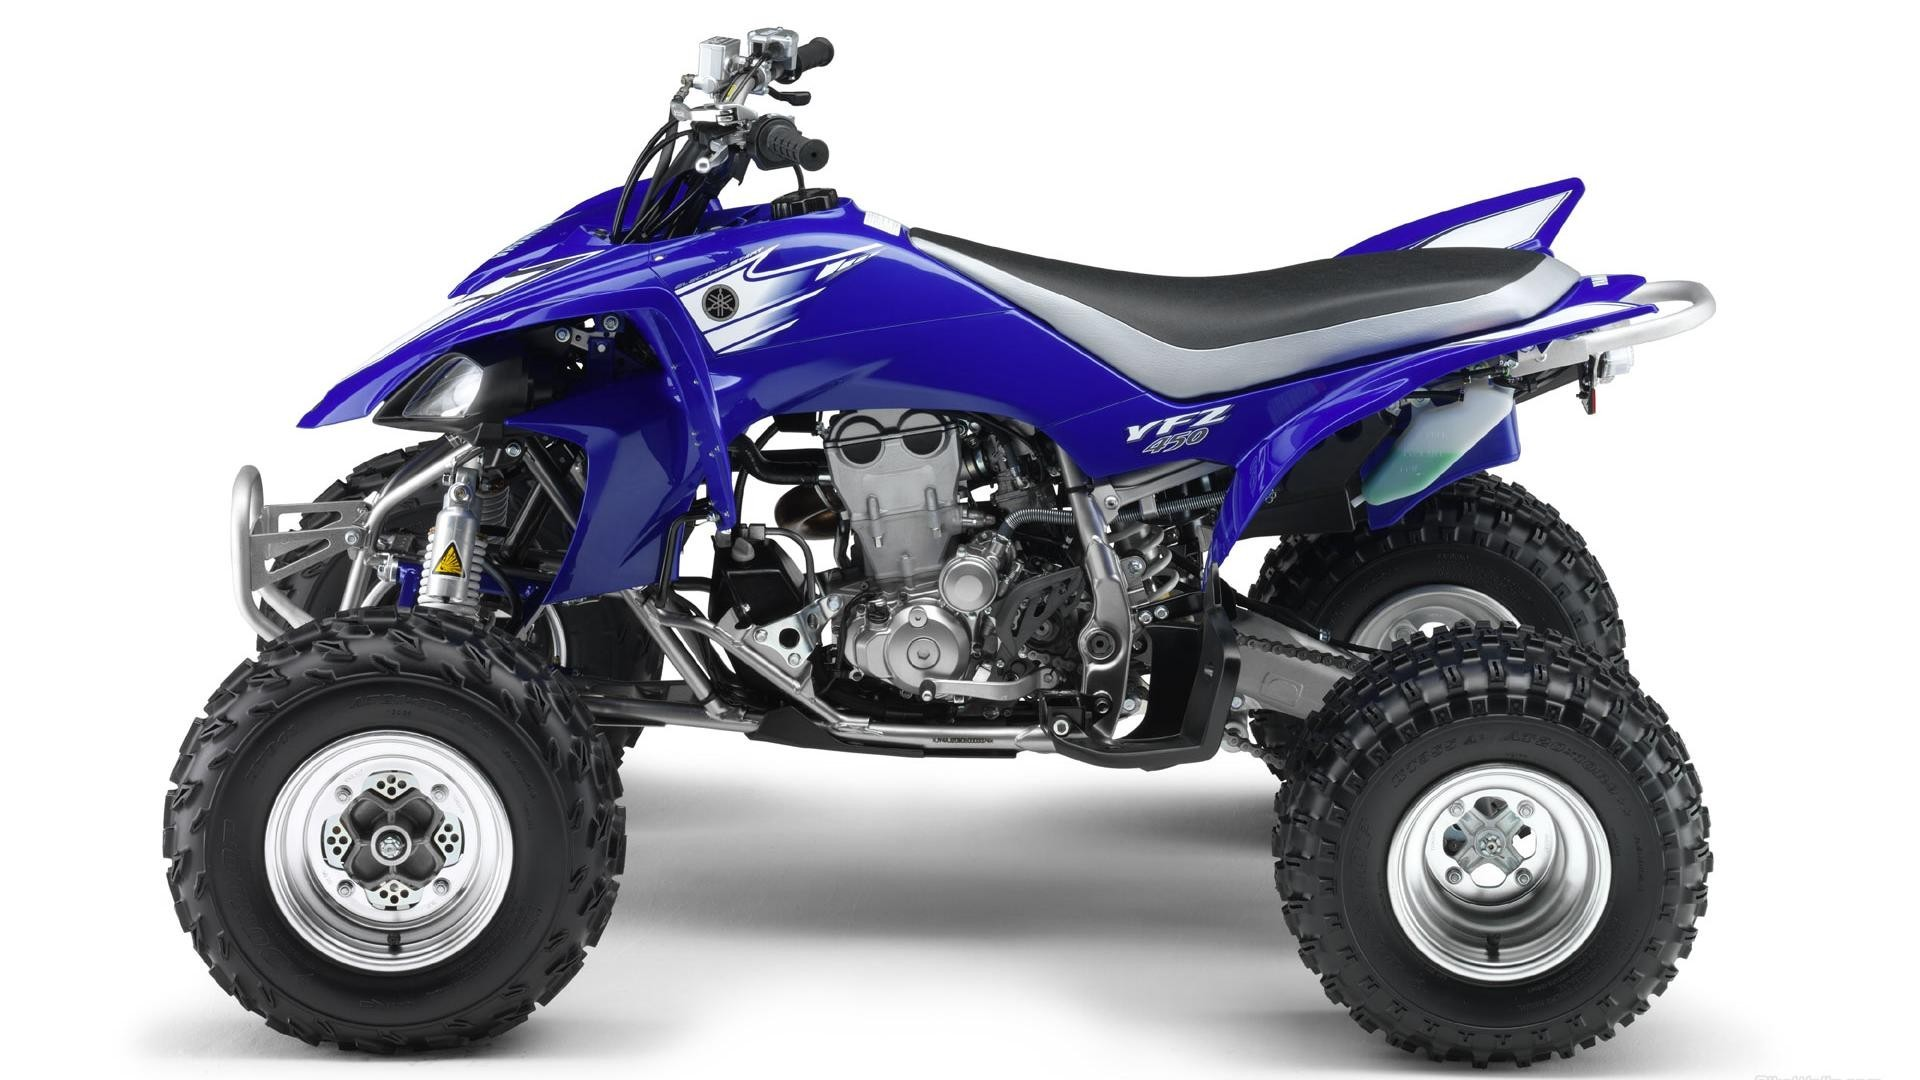 atvs drive vehicle car tire wheel engine transportation system fast race bike power chrome speed motorbike automotive machine competition glazed